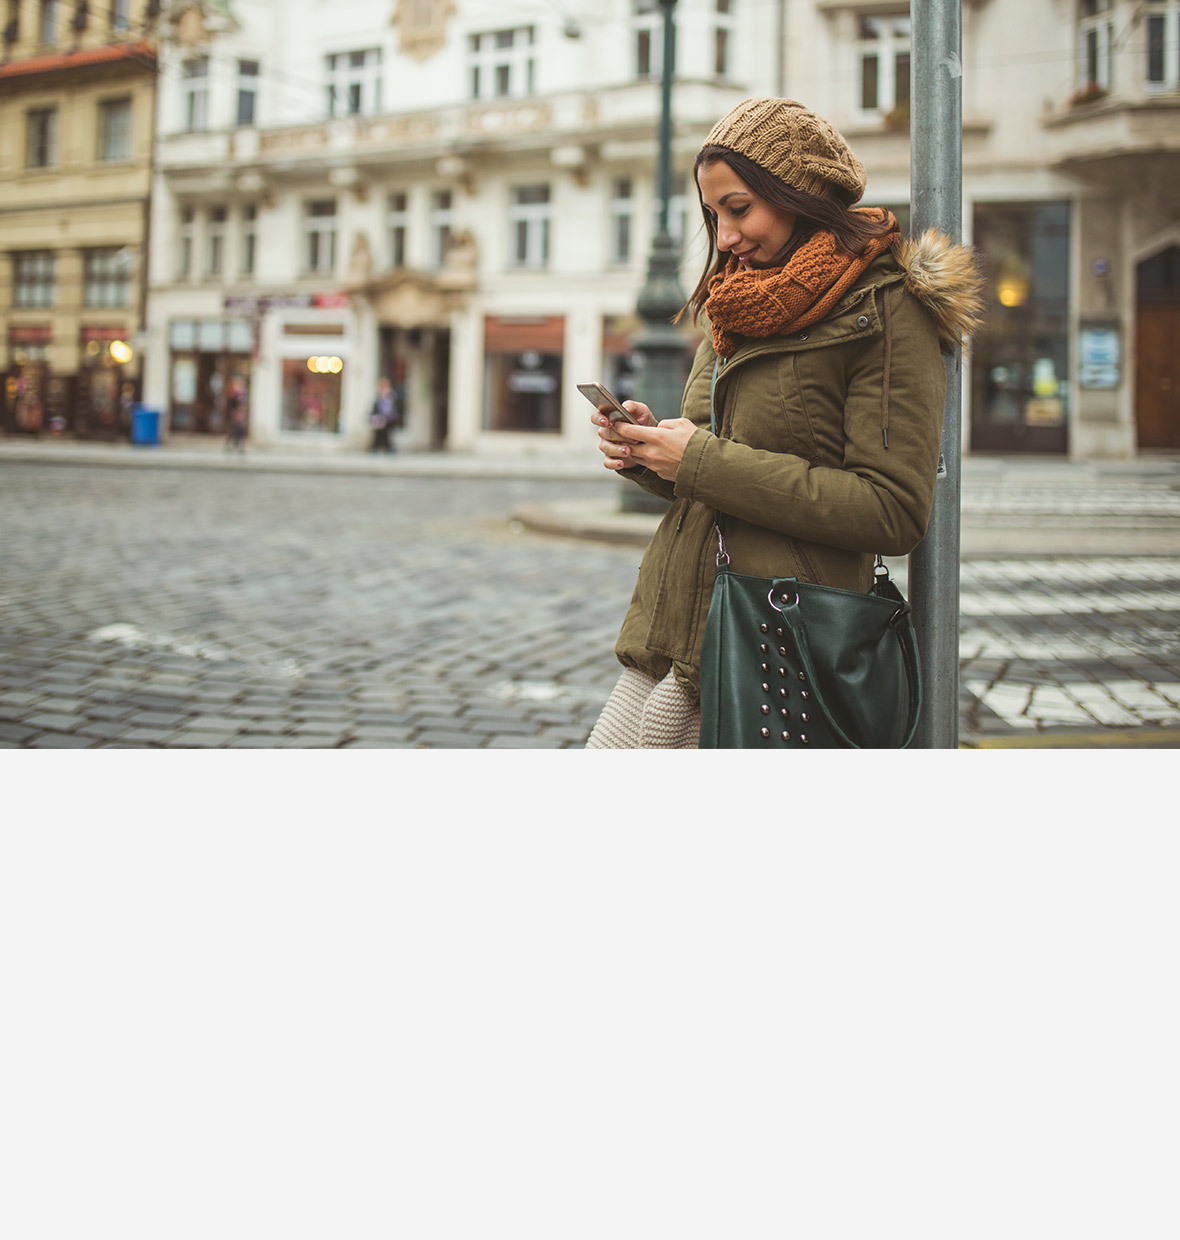 Girl travelling and looking at her phone